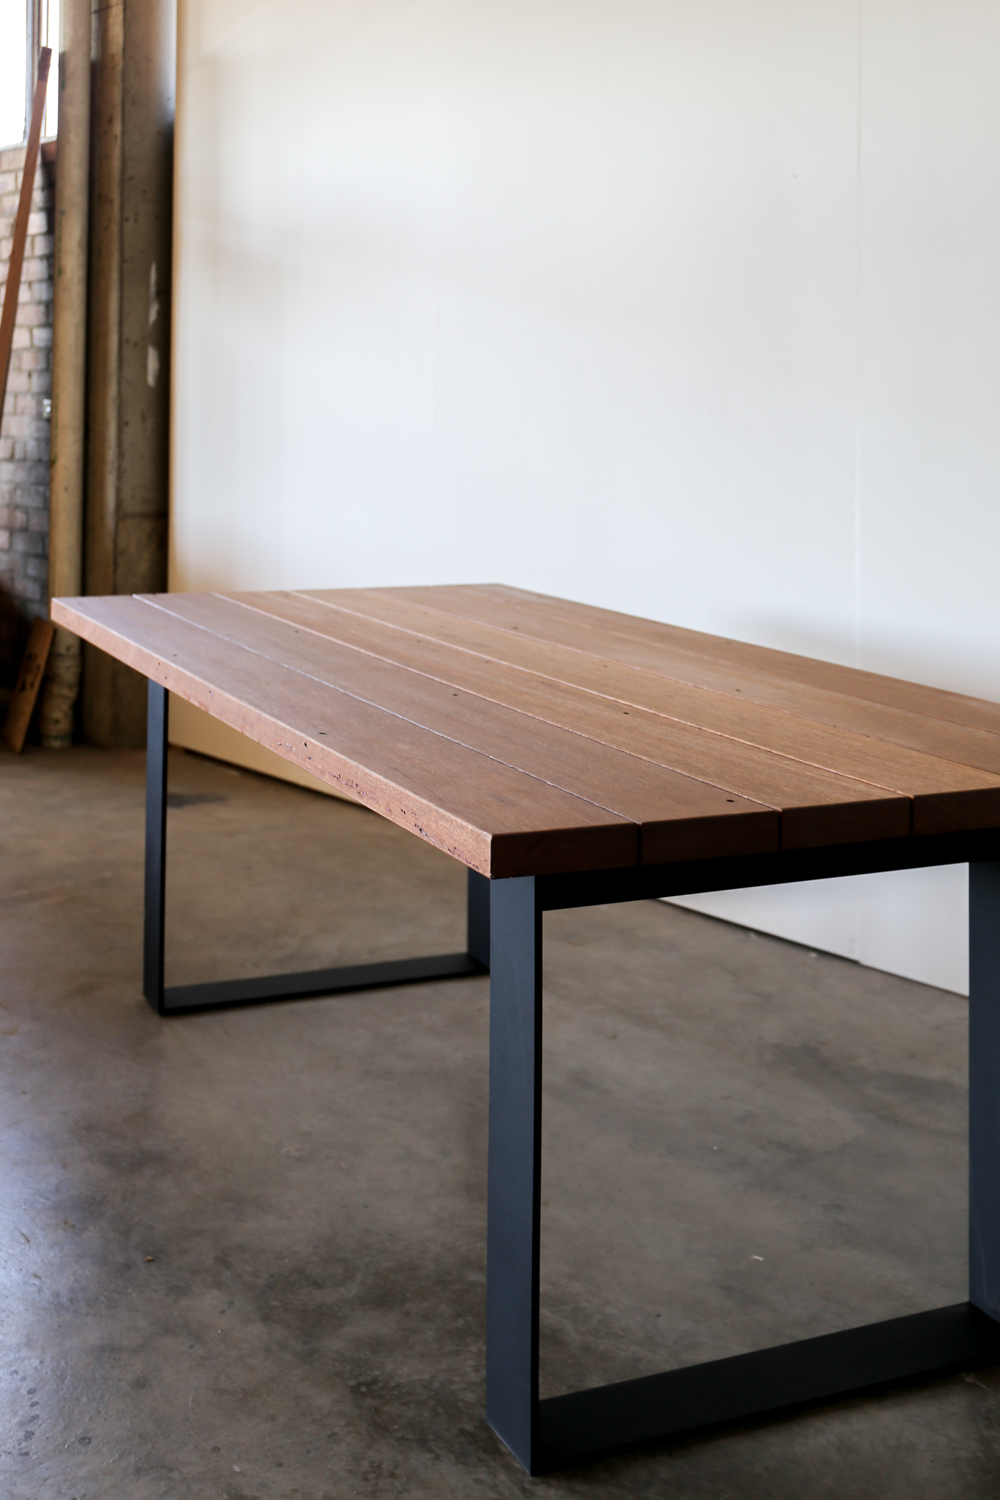 0404_TimbermillWorkshop_Outdoor Recyled Timber Table-2.jpg